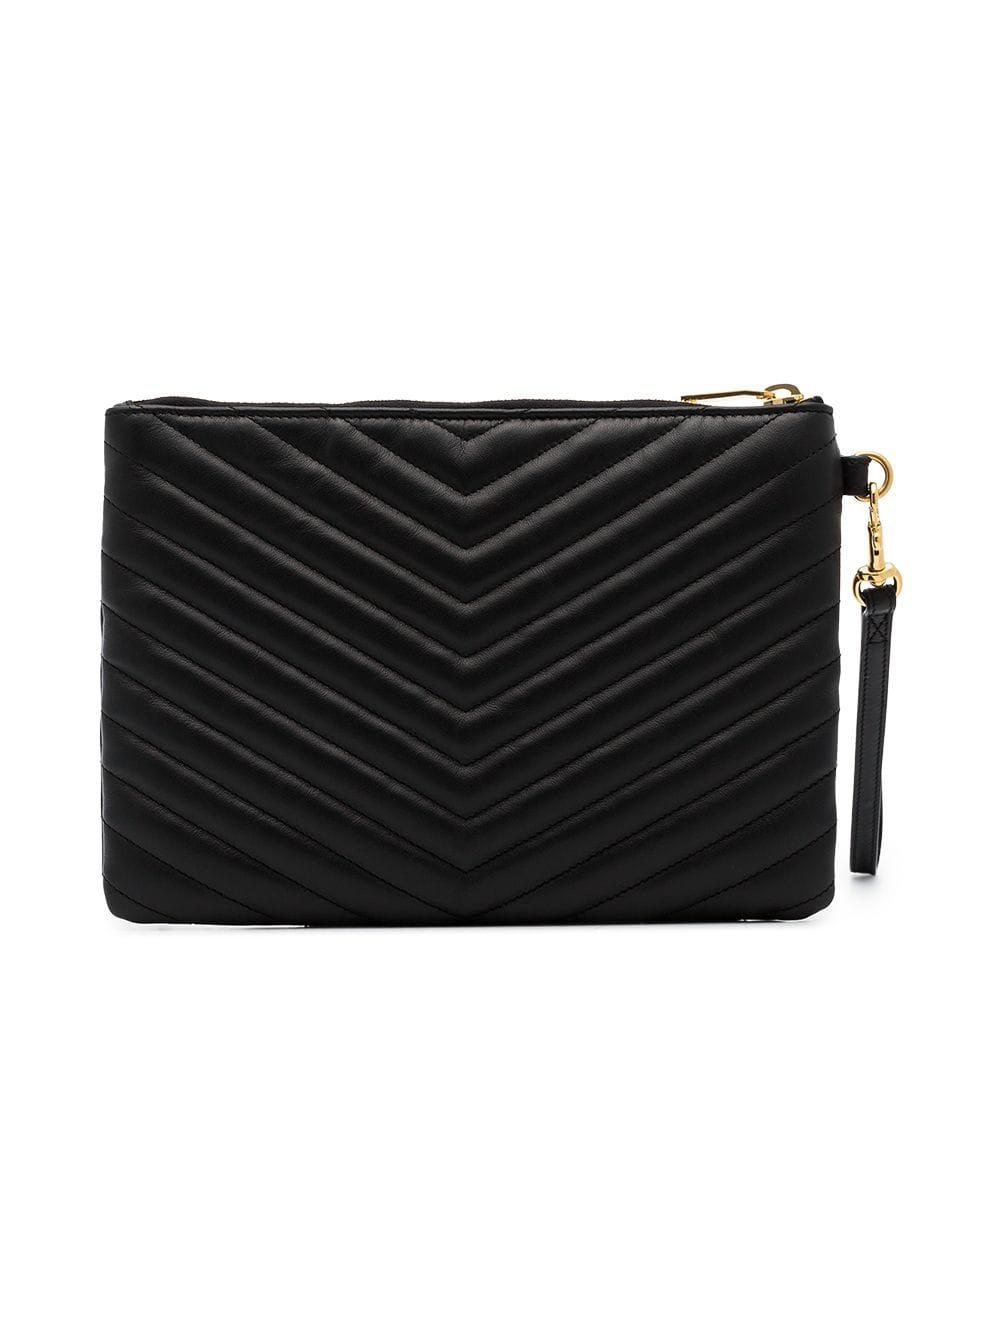 Saint Laurent - Black Quilted Leather Clutch Bag - Lyst. View fullscreen 7444ec9ffd3ac